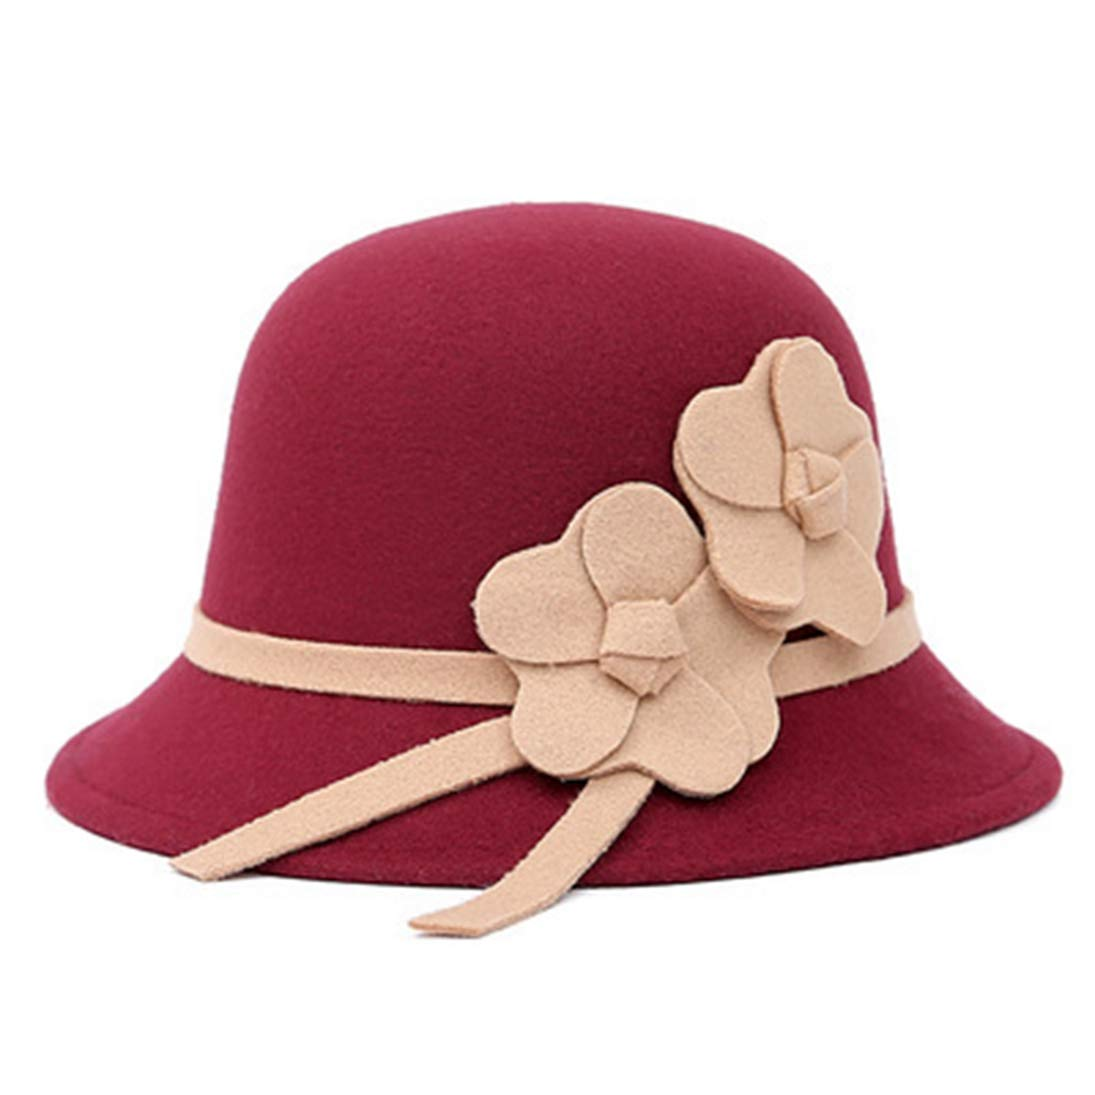 Mens Fedora Hat Unisex Vintage Stylish Wool Felt Bowler Cap Casual Floppy Trilby Jazz Hat with Flowers for Lady